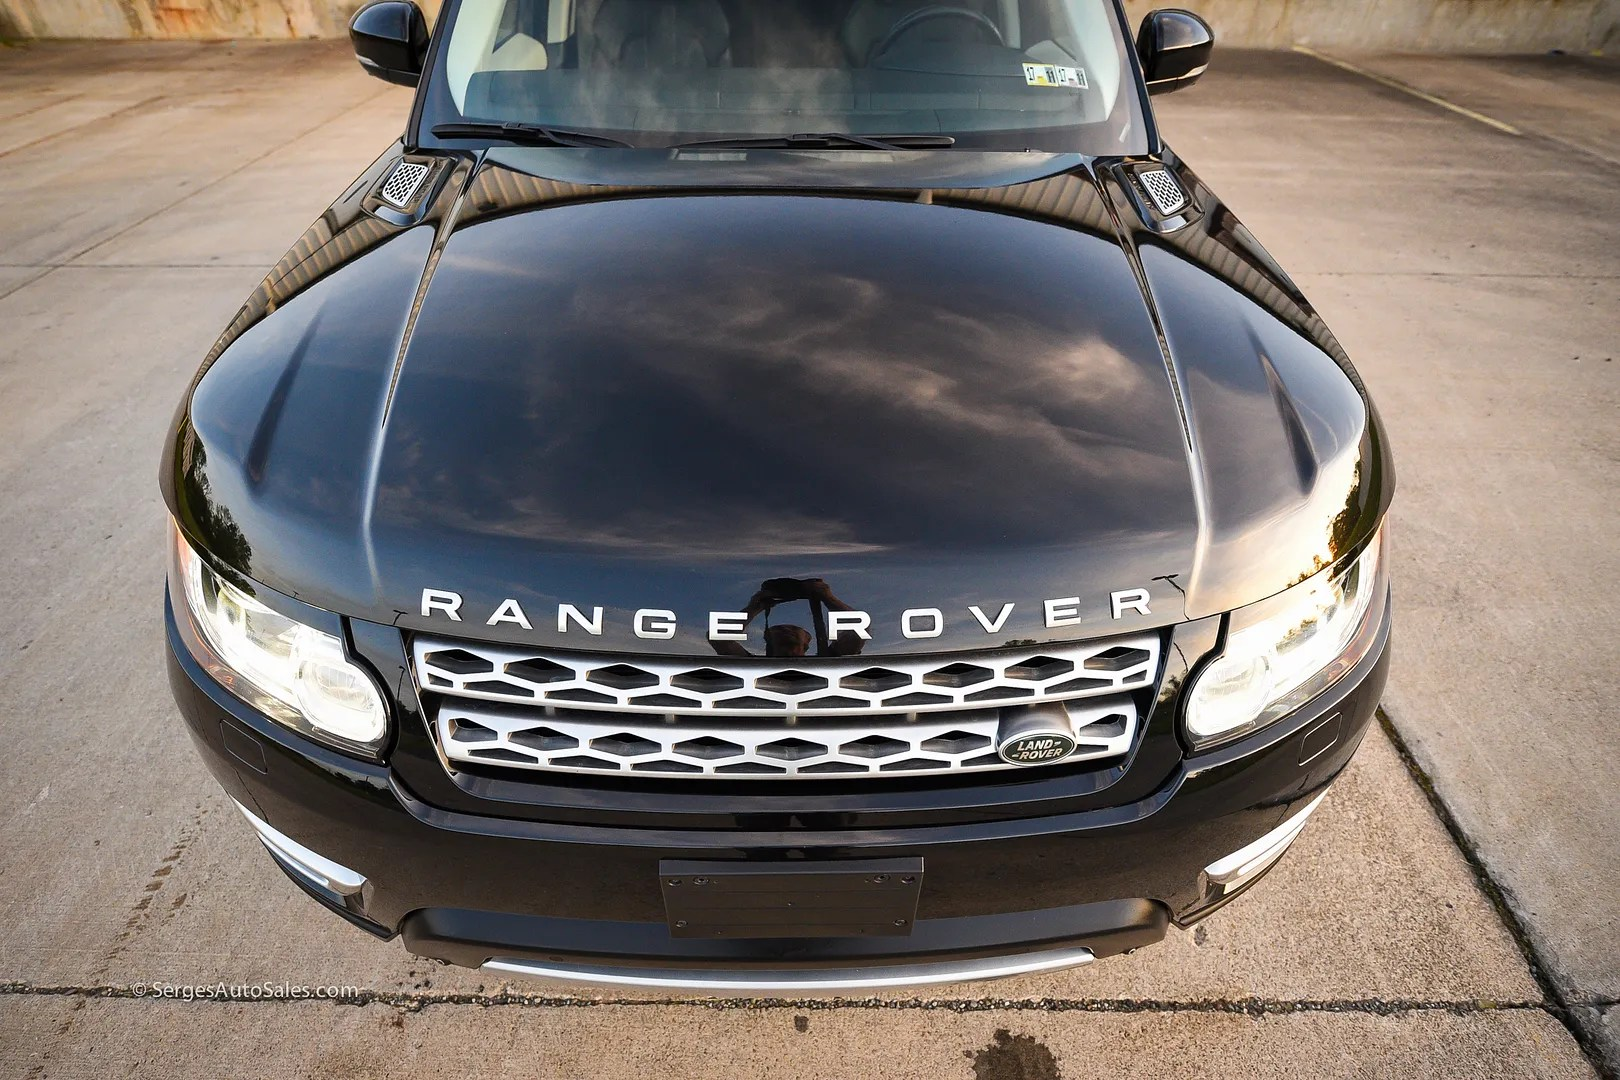 photo Serges-auto-sales-range-rover-for-sale-northeast-pa-56_zpscdpyfuge.jpg